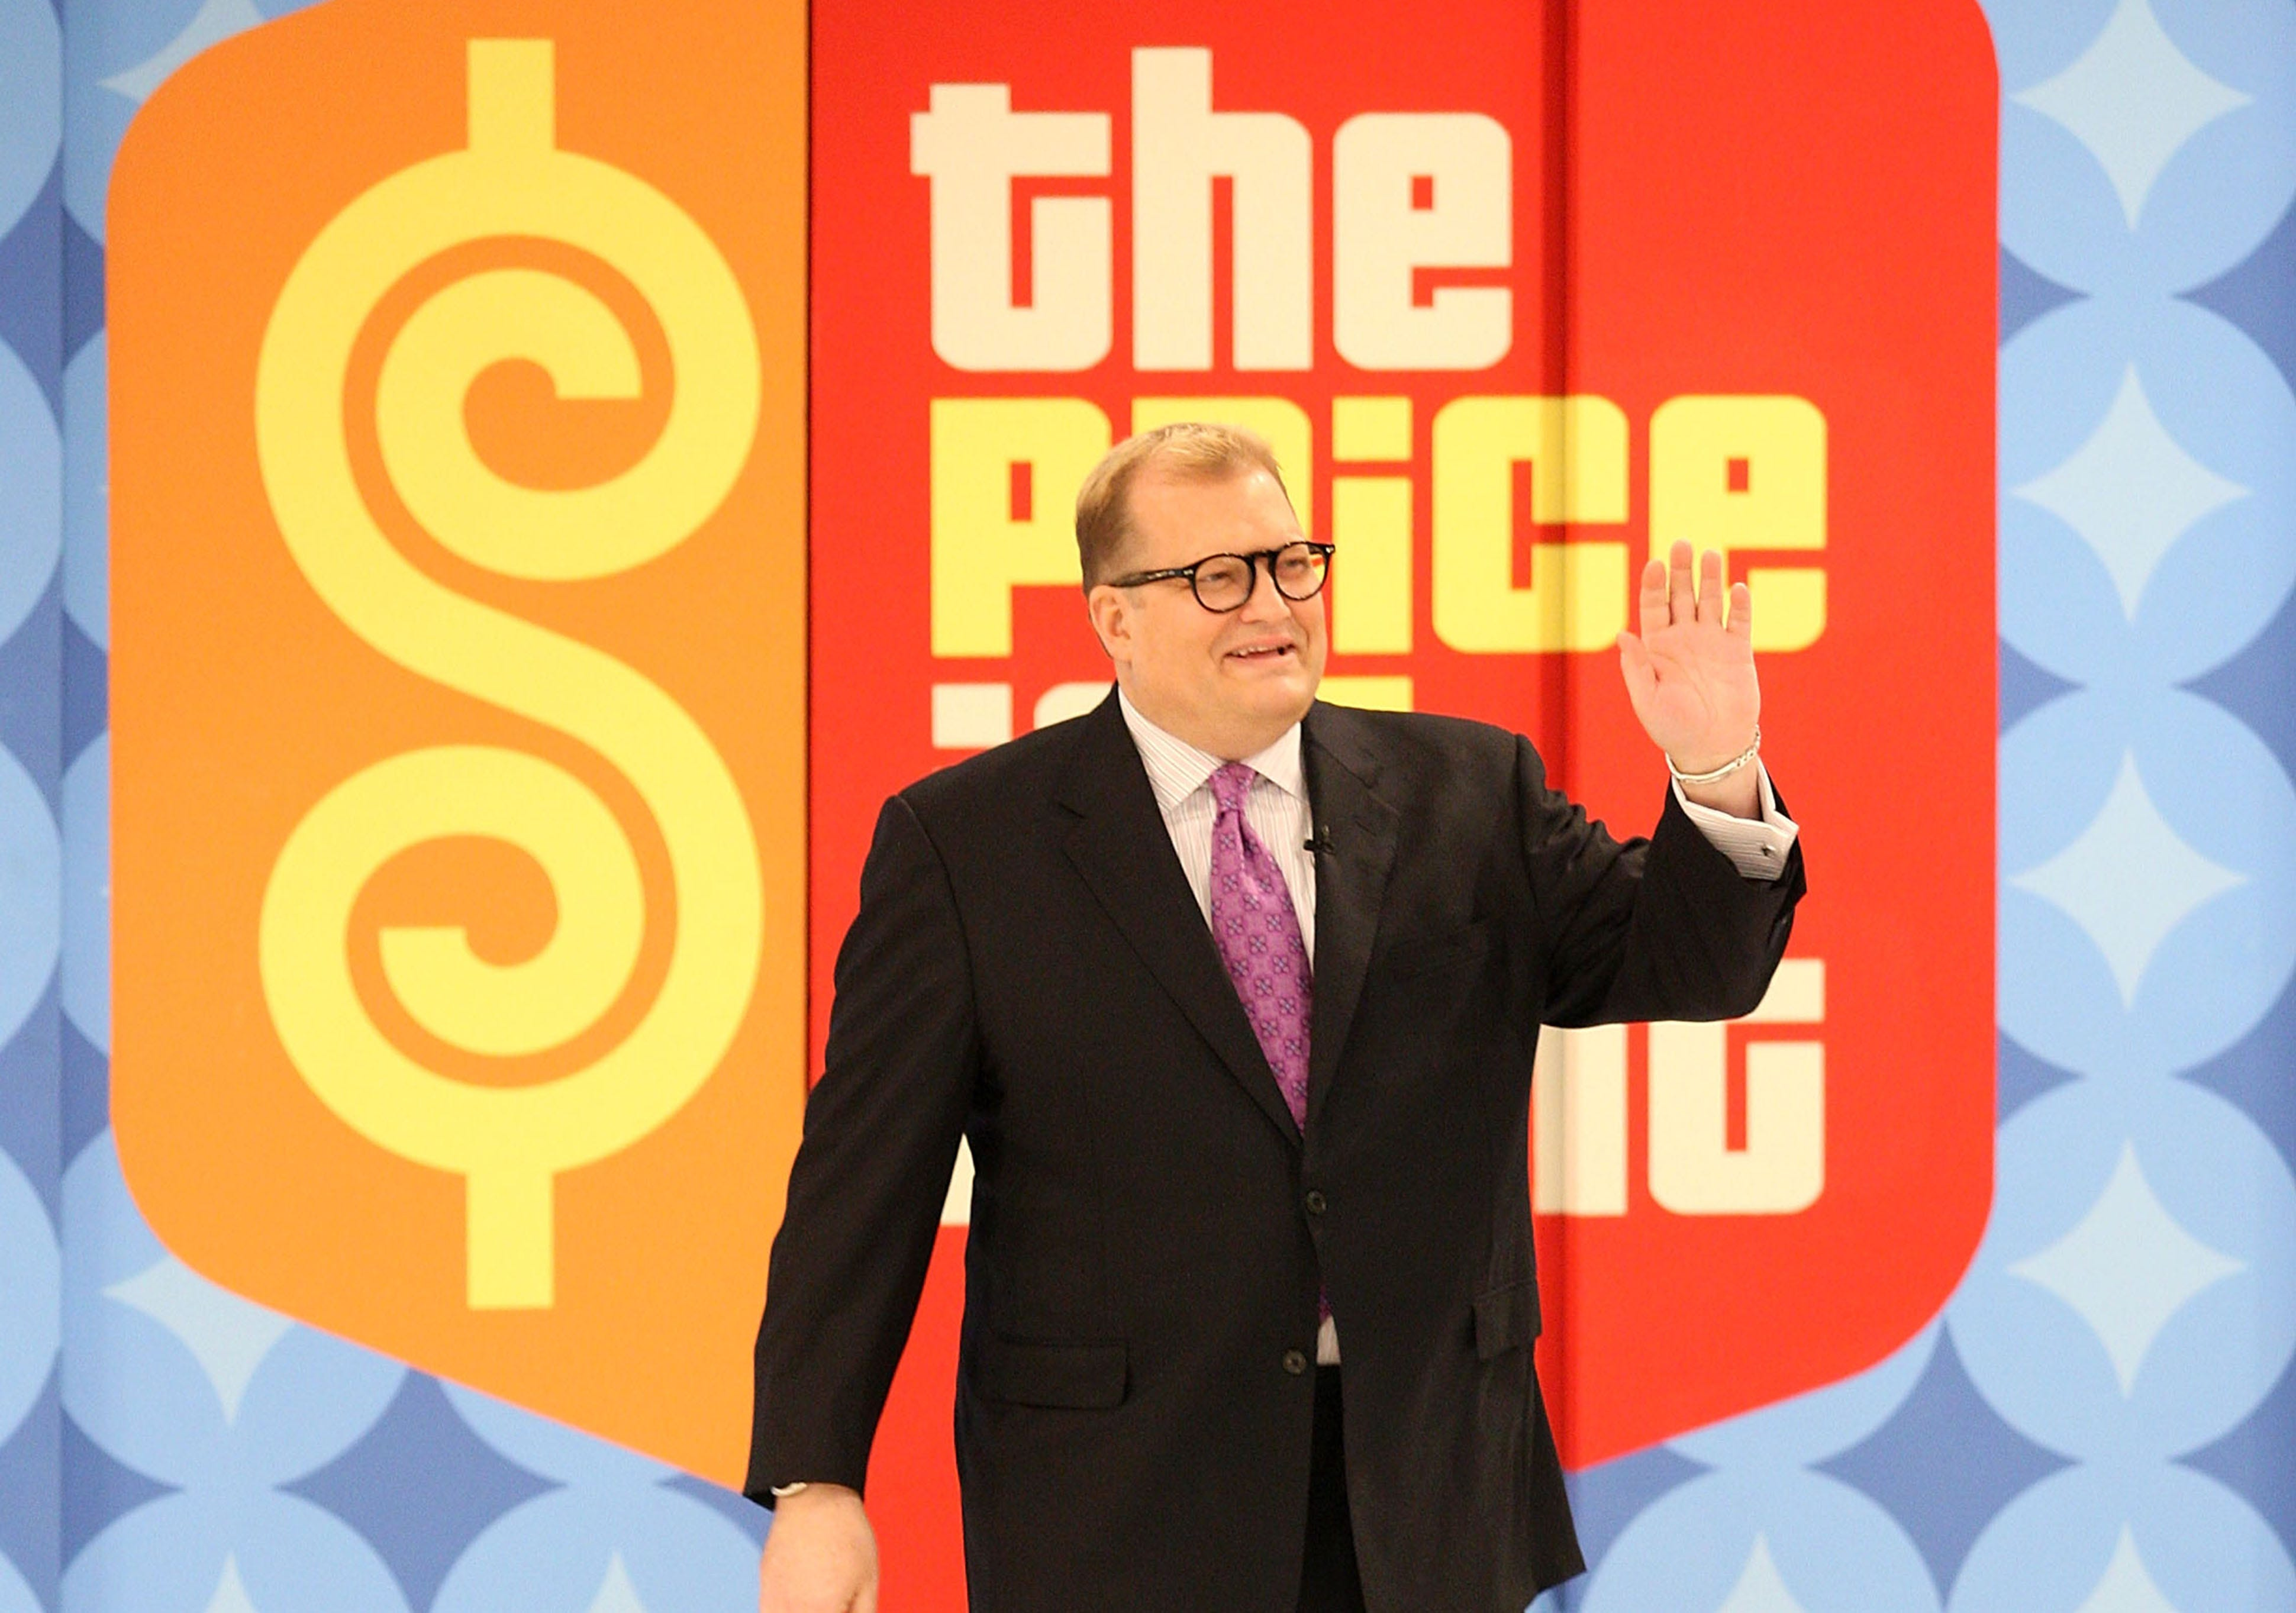 'The Price is Right' contestant shouts out fantasy football team